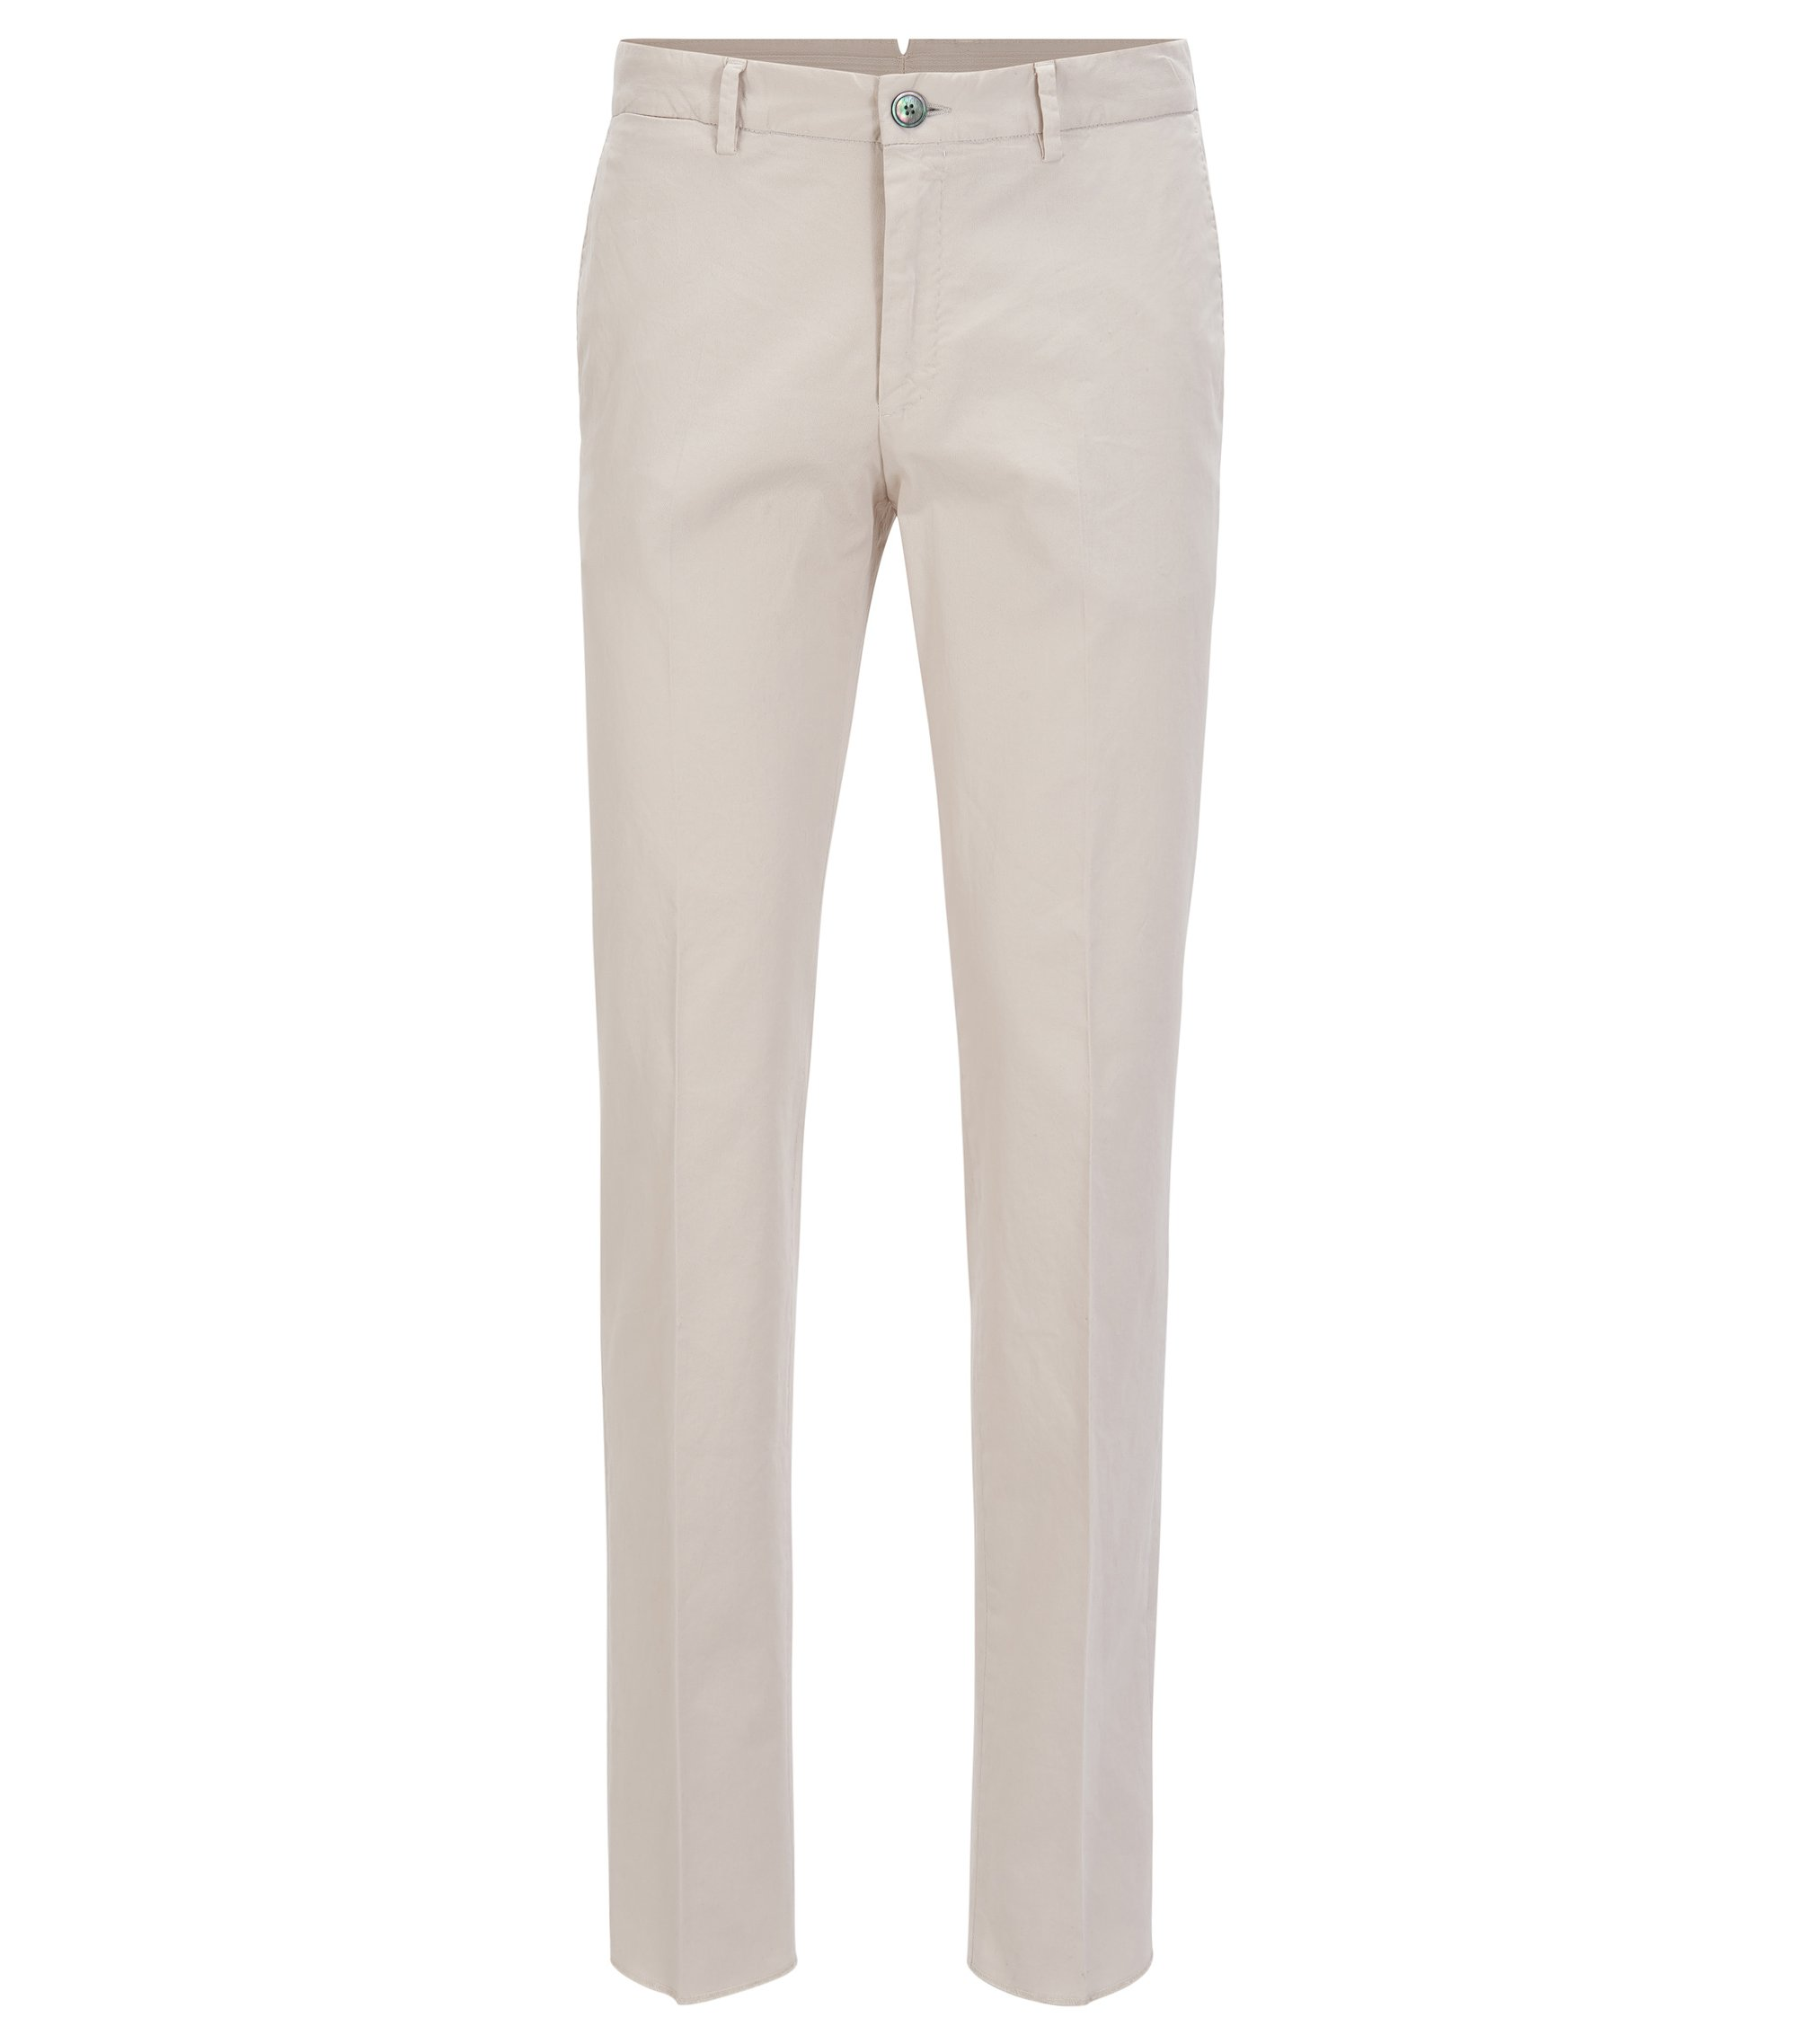 Pantalon Slim Fit en coton stretch teint en pièce, Chair